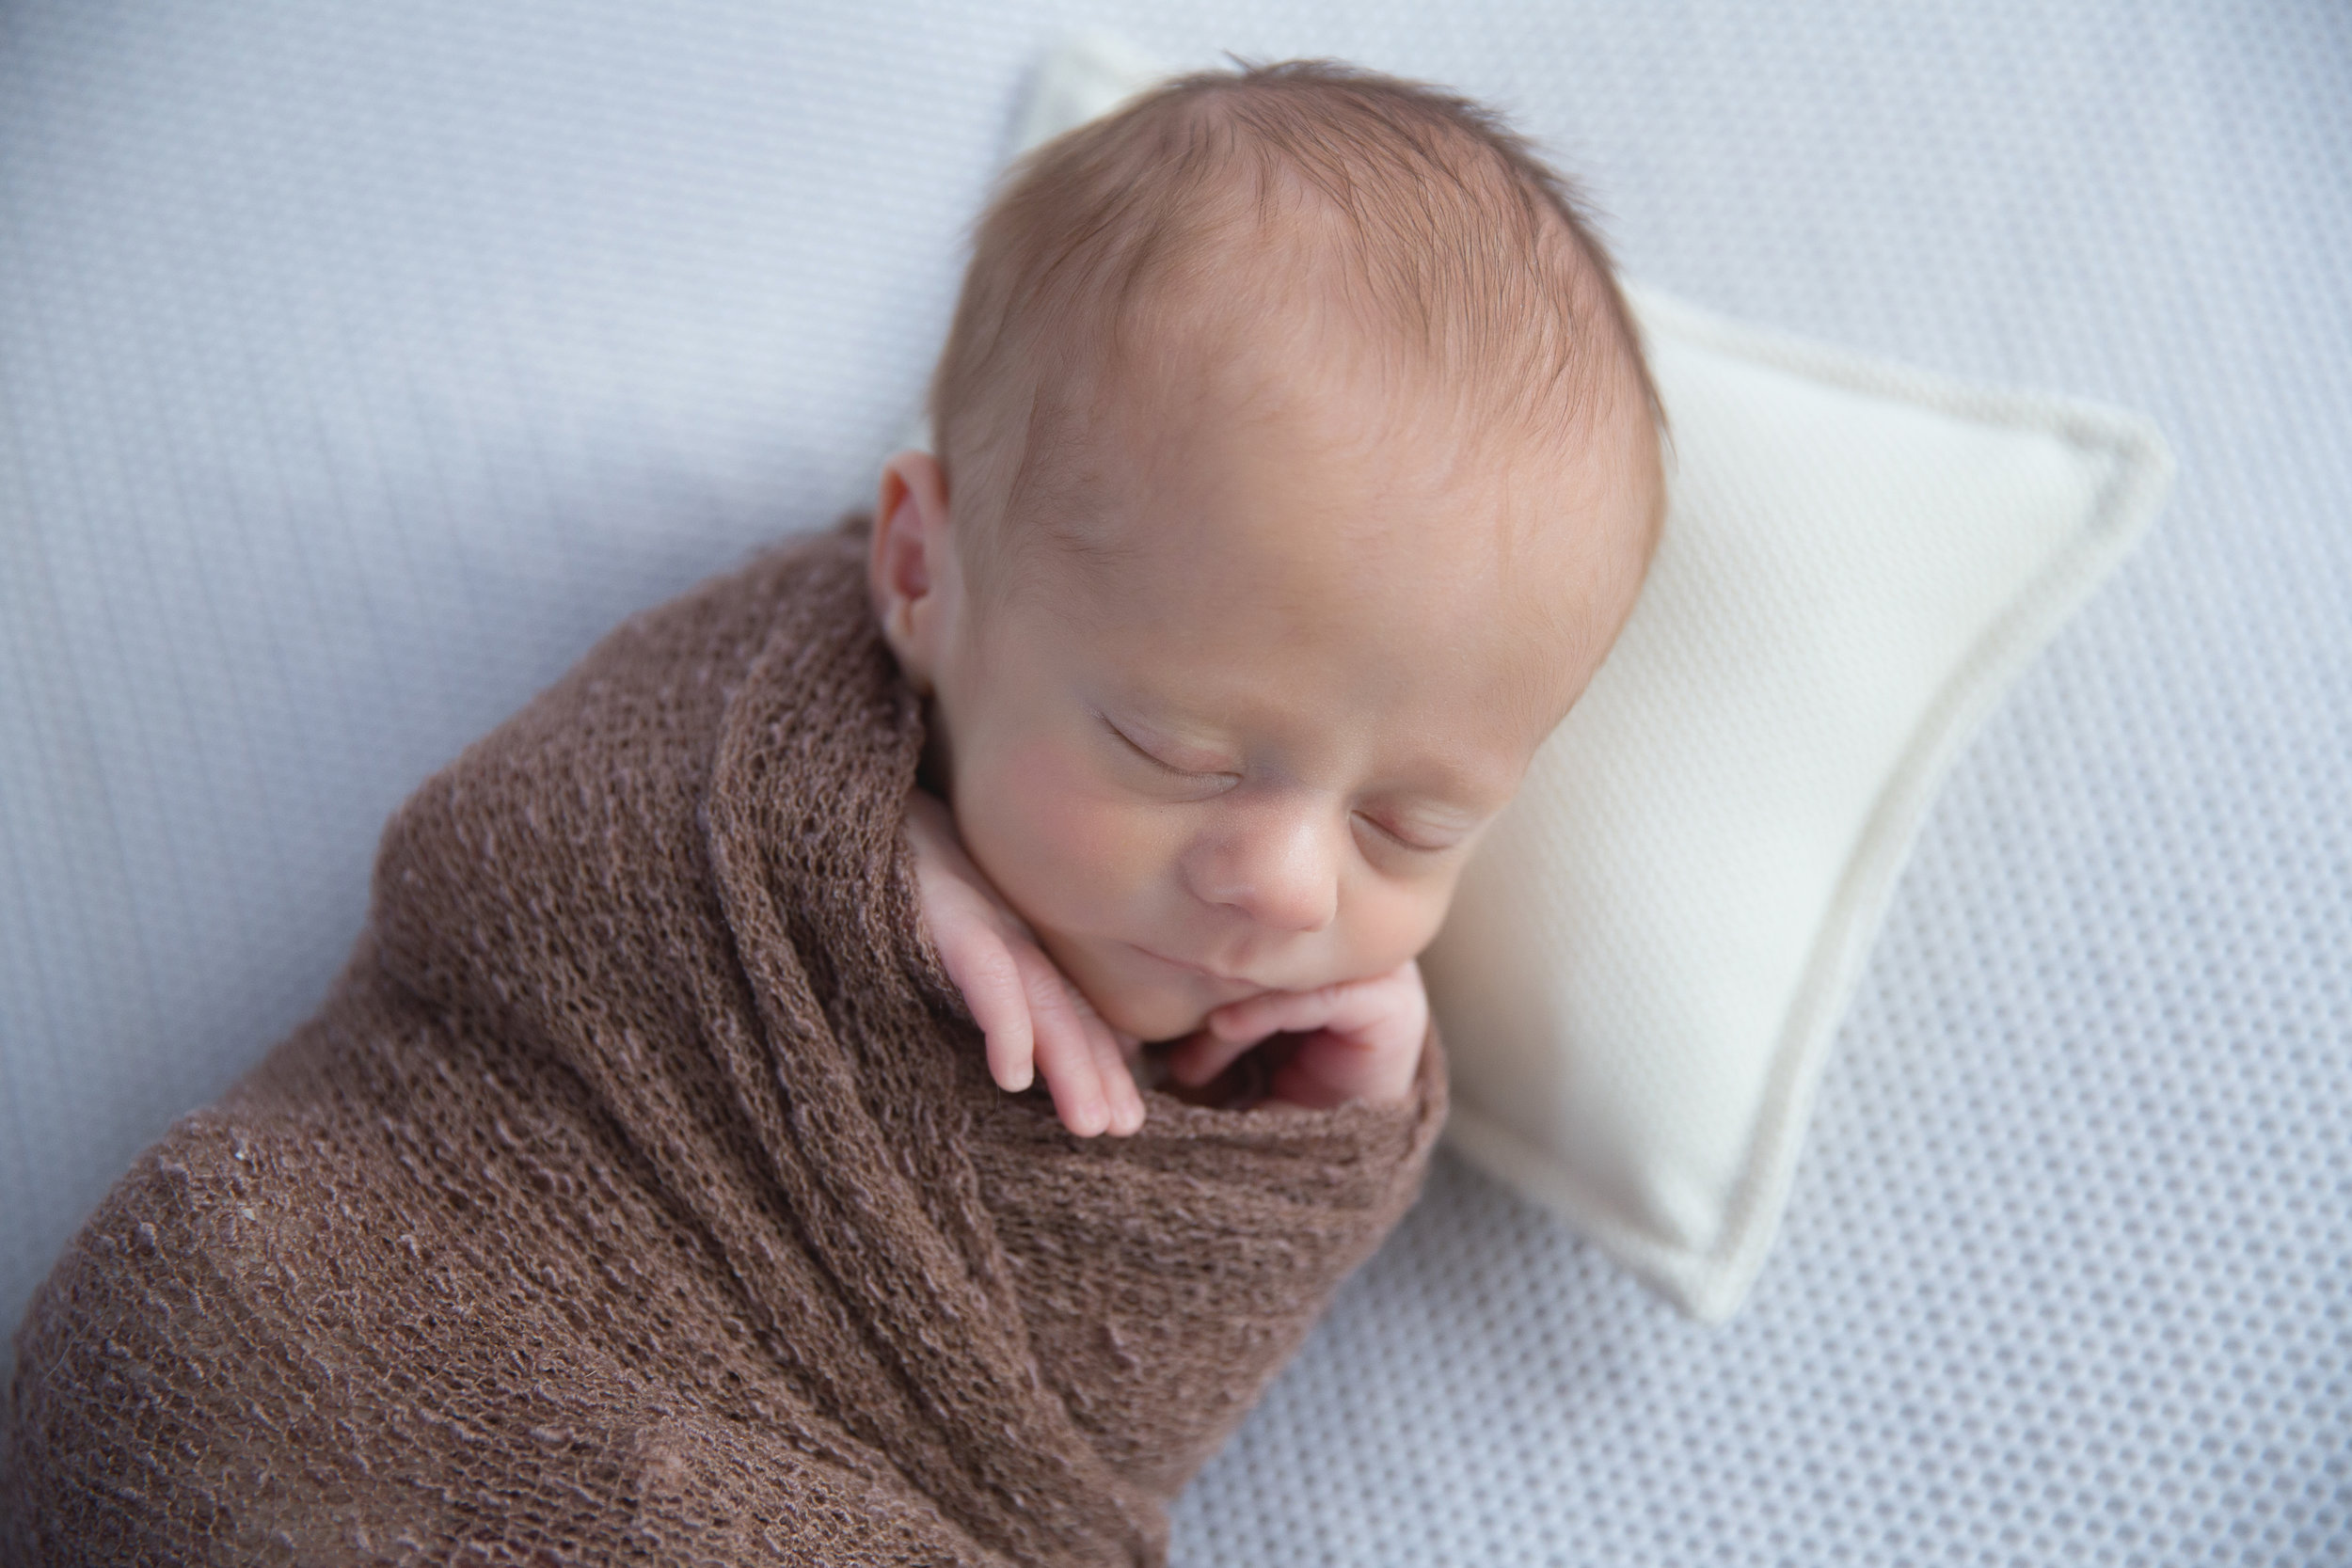 Sweet little newborn baby boy all swaddled and sleeping soundly. Newborn photographer in Calgary Alberta